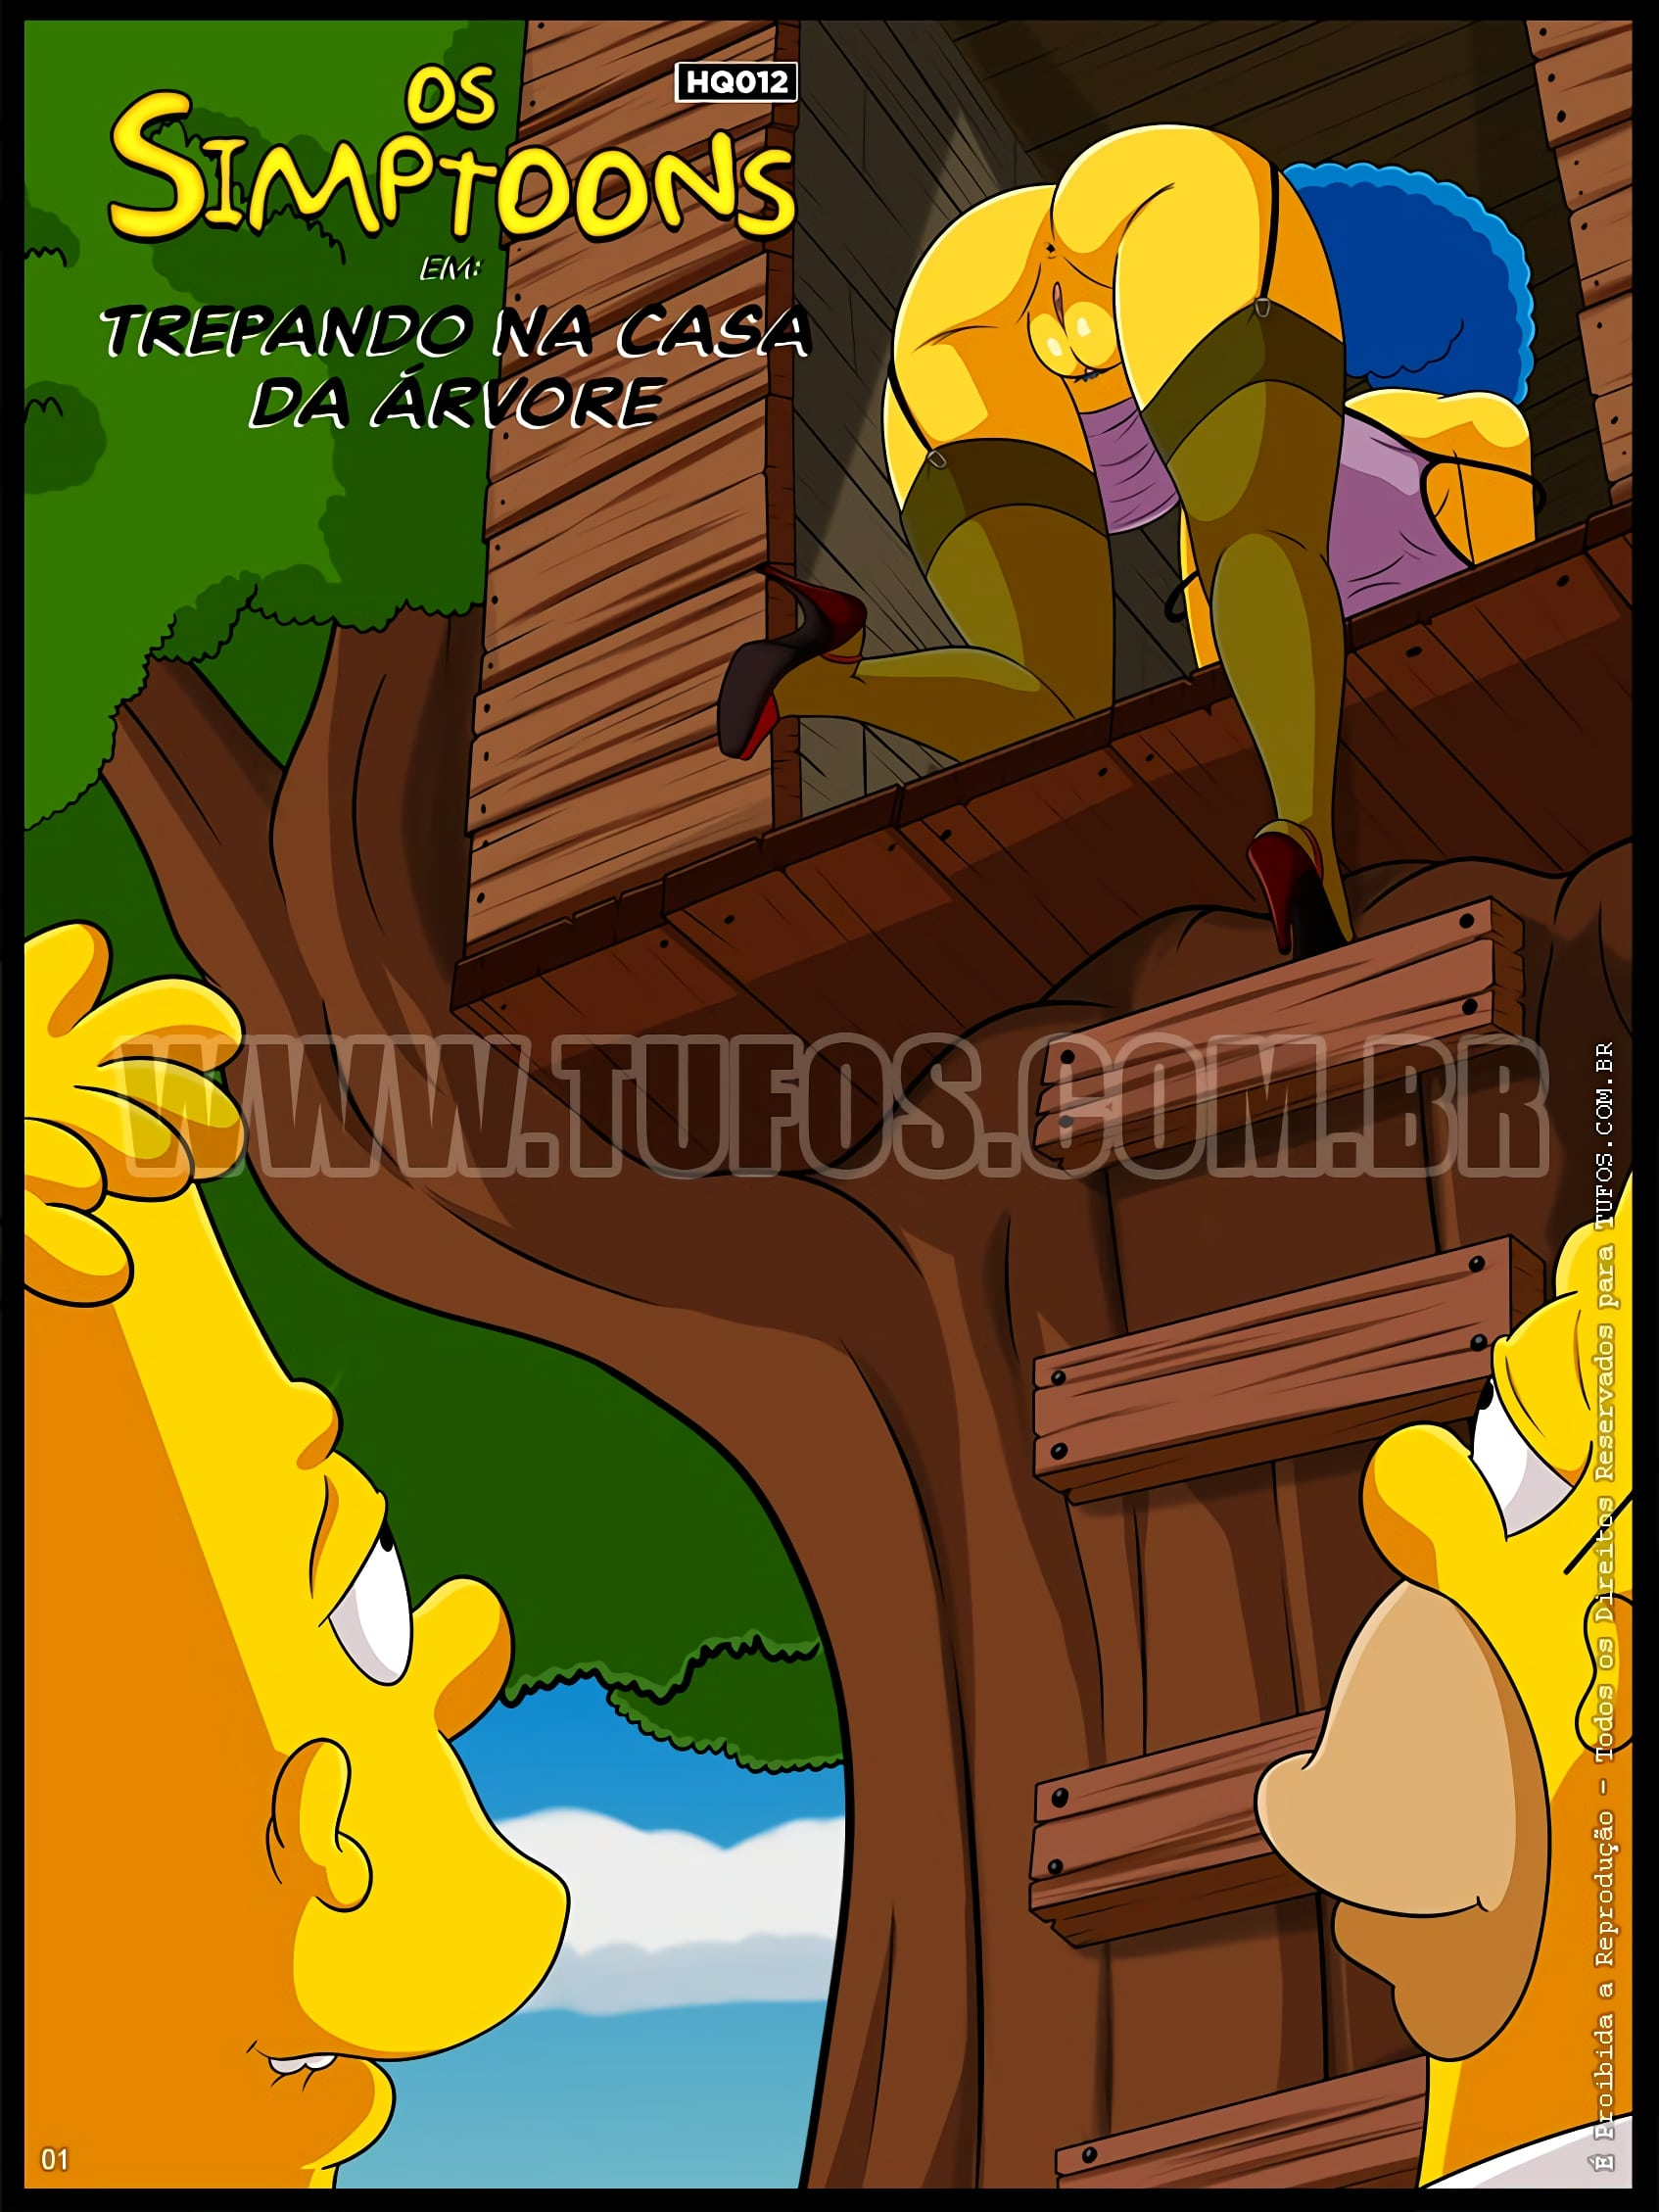 The Simptoons 12 – Fucking in the Treehouse